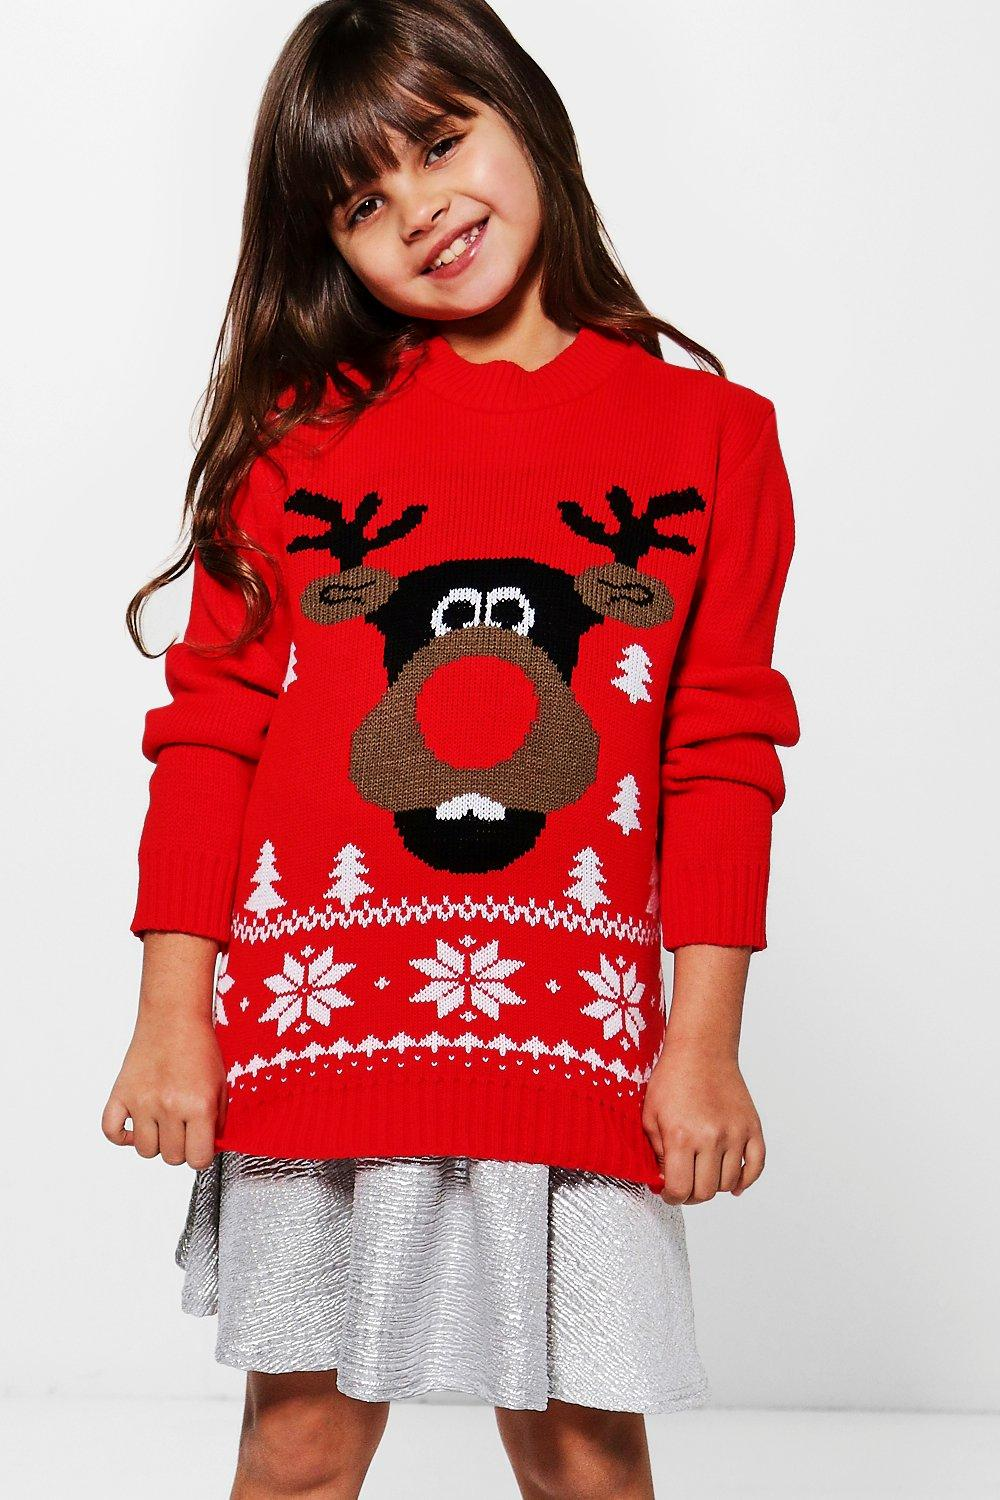 Girls 3D Rudolph Nose Christmas Jumper